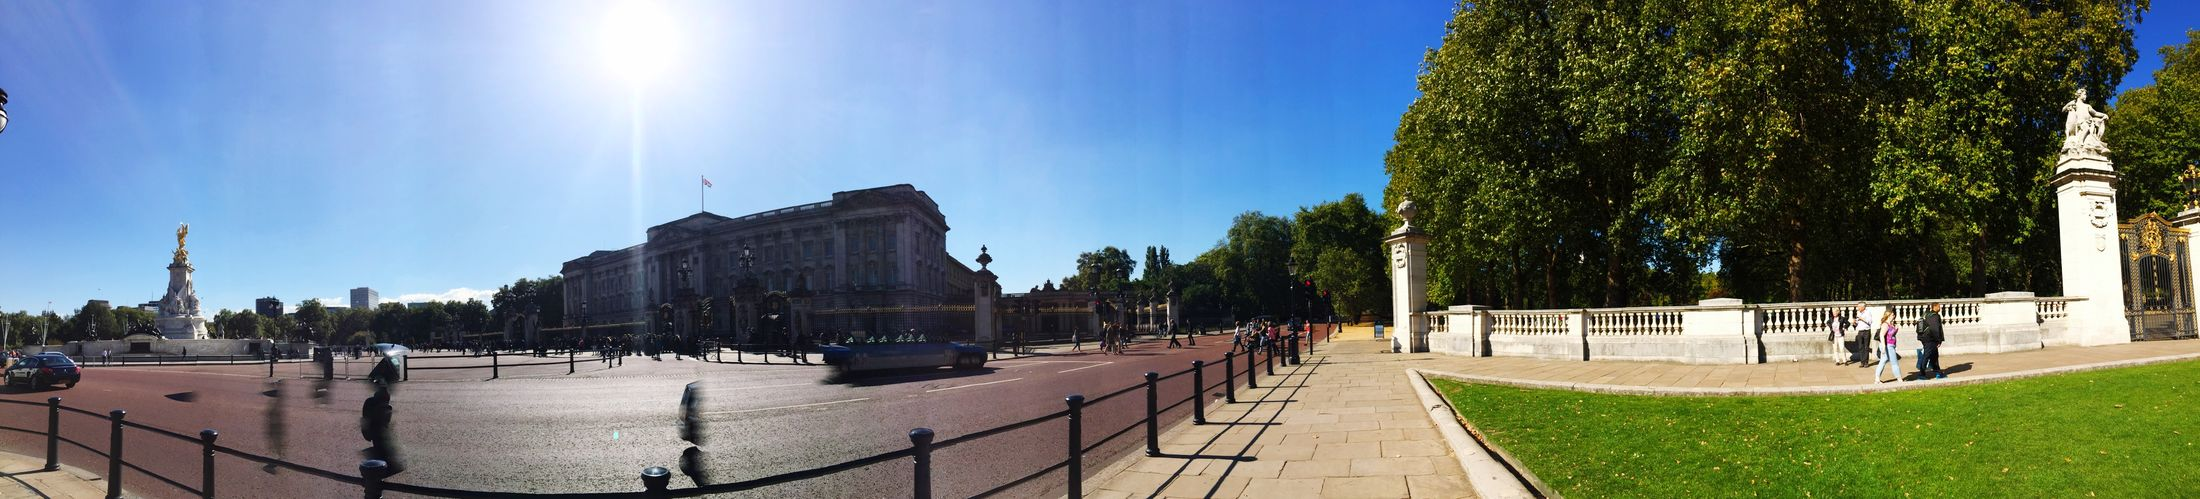 Buckingham Palace and Green Park in London England🇬🇧